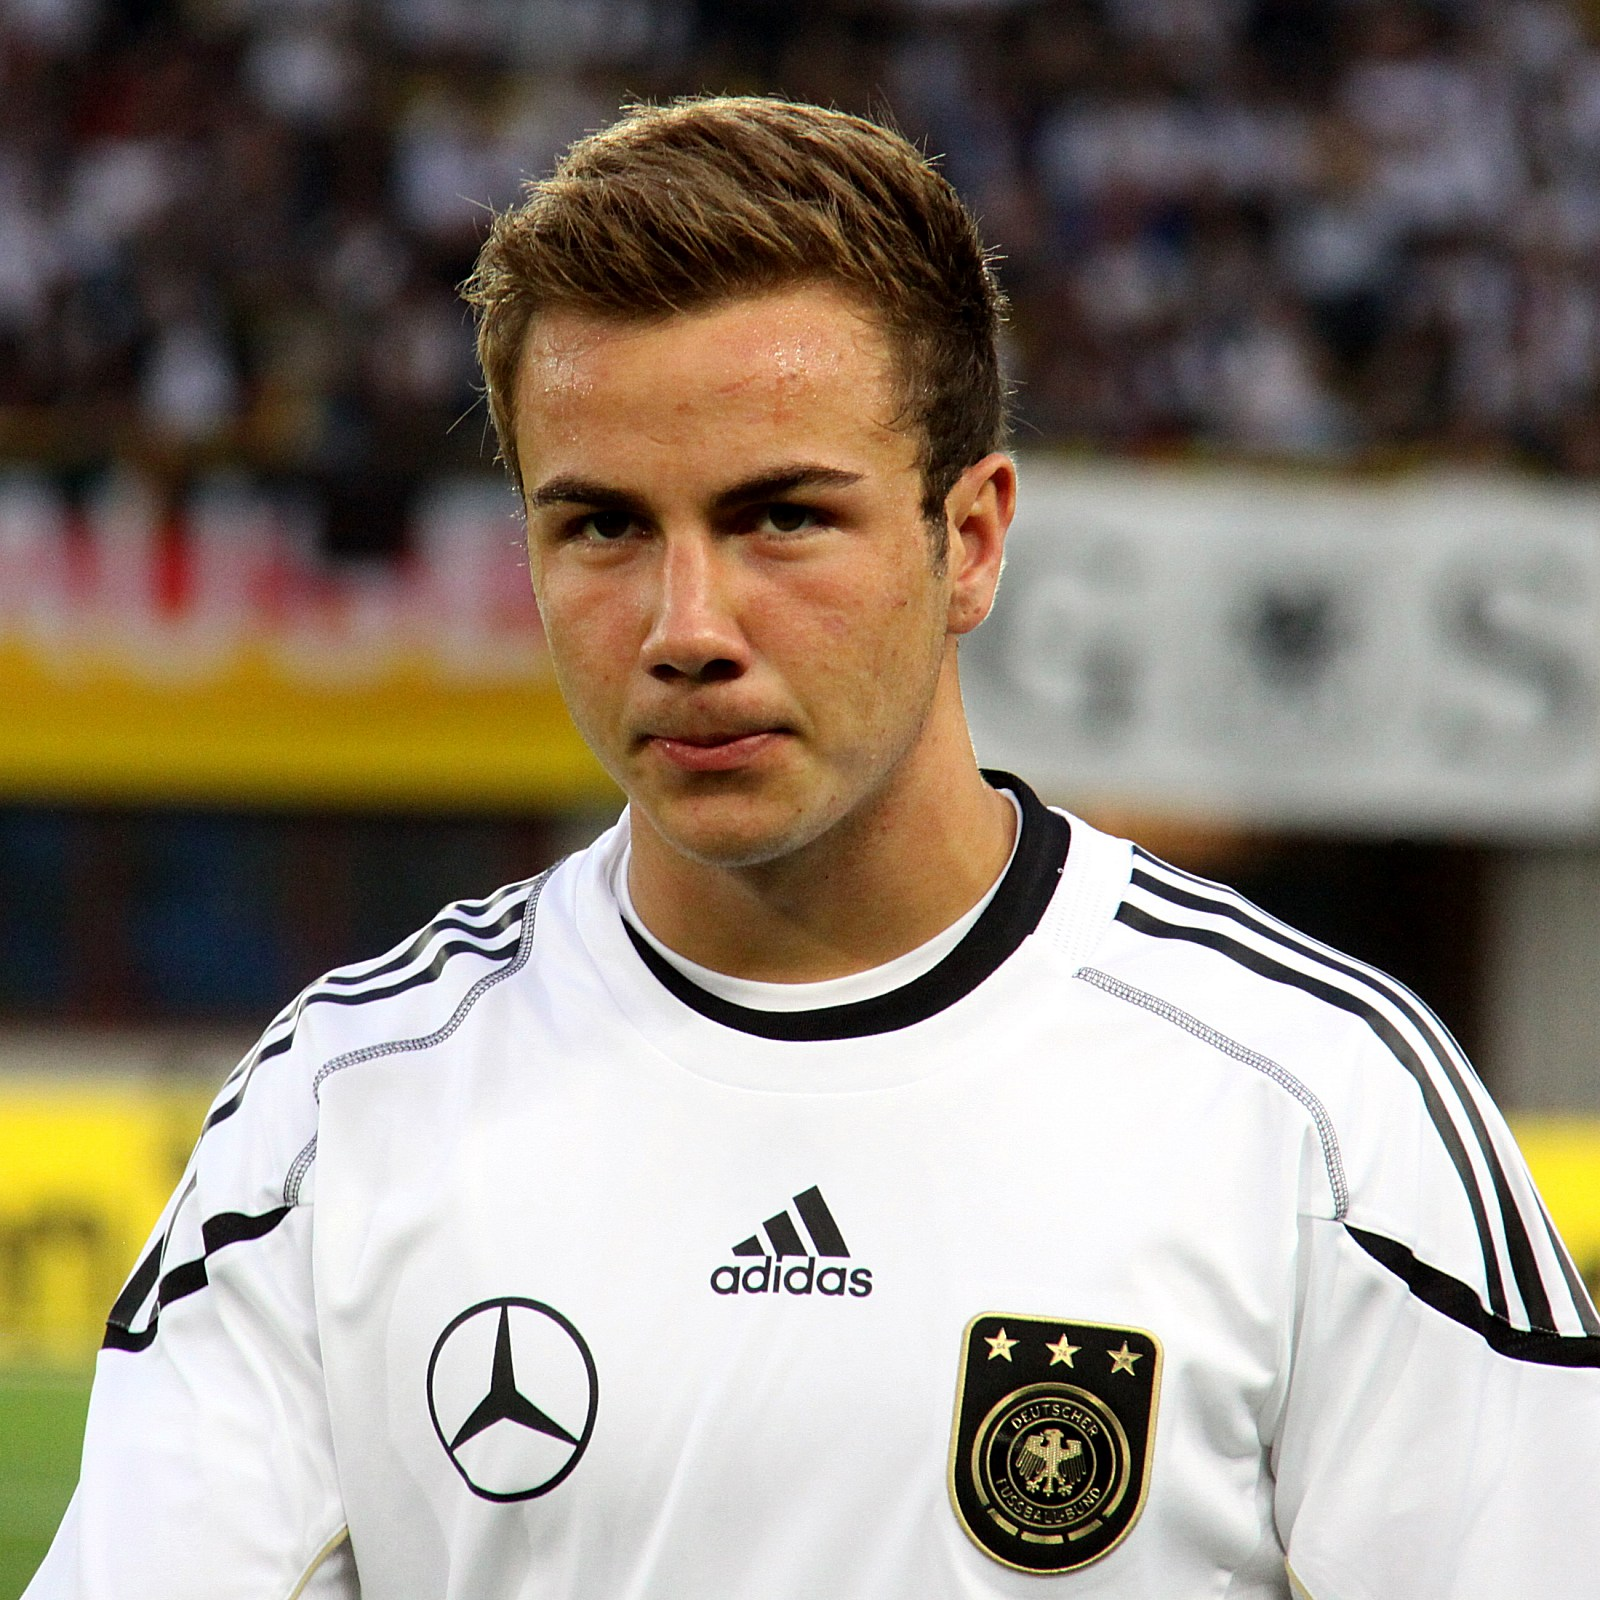 Mario Götze 2018 Dunkelblond Haar & Alternative Haarstil.